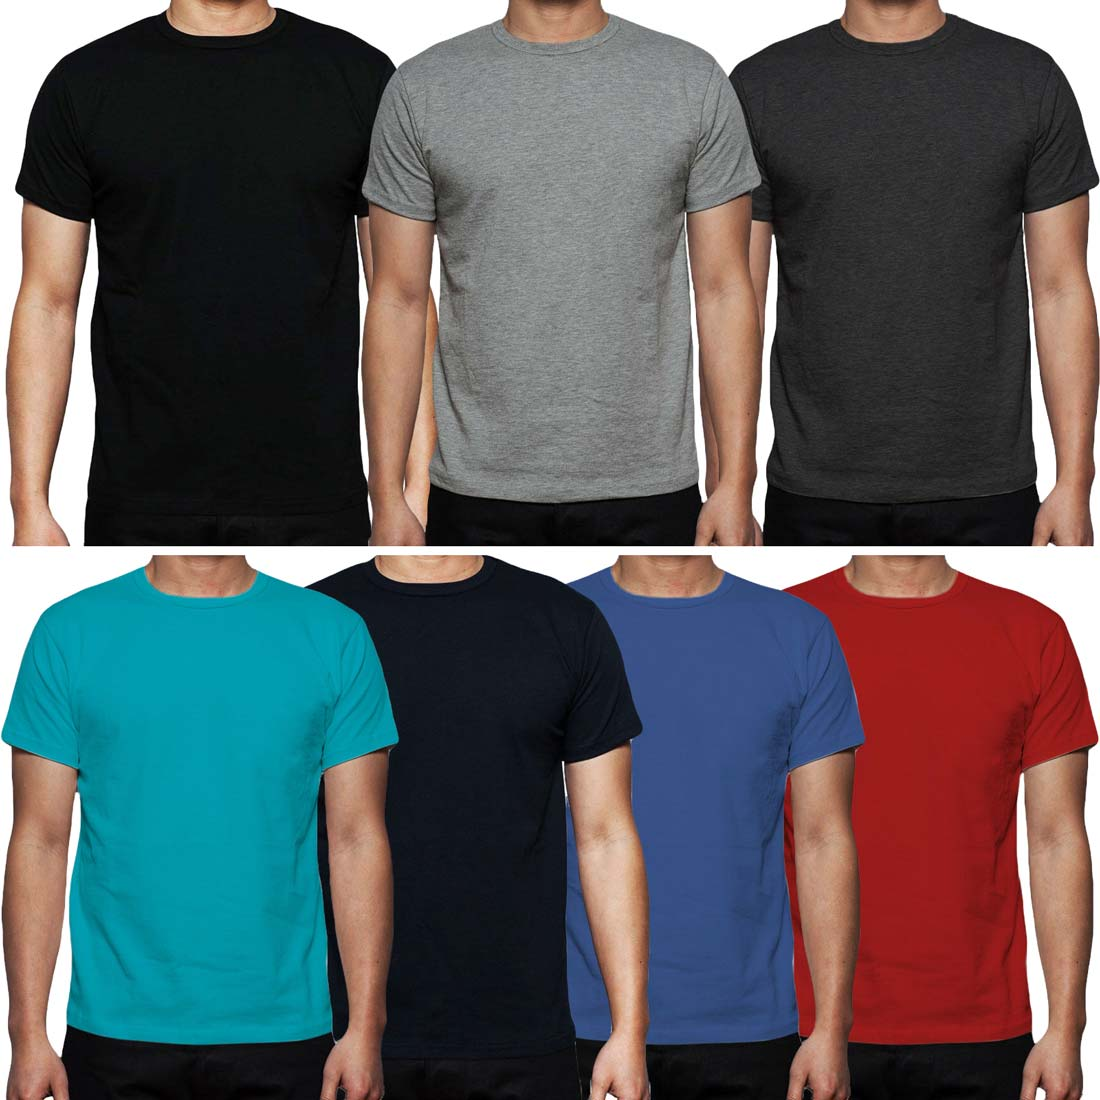 Mens Plain T-Shirt 7 Pack Assorted